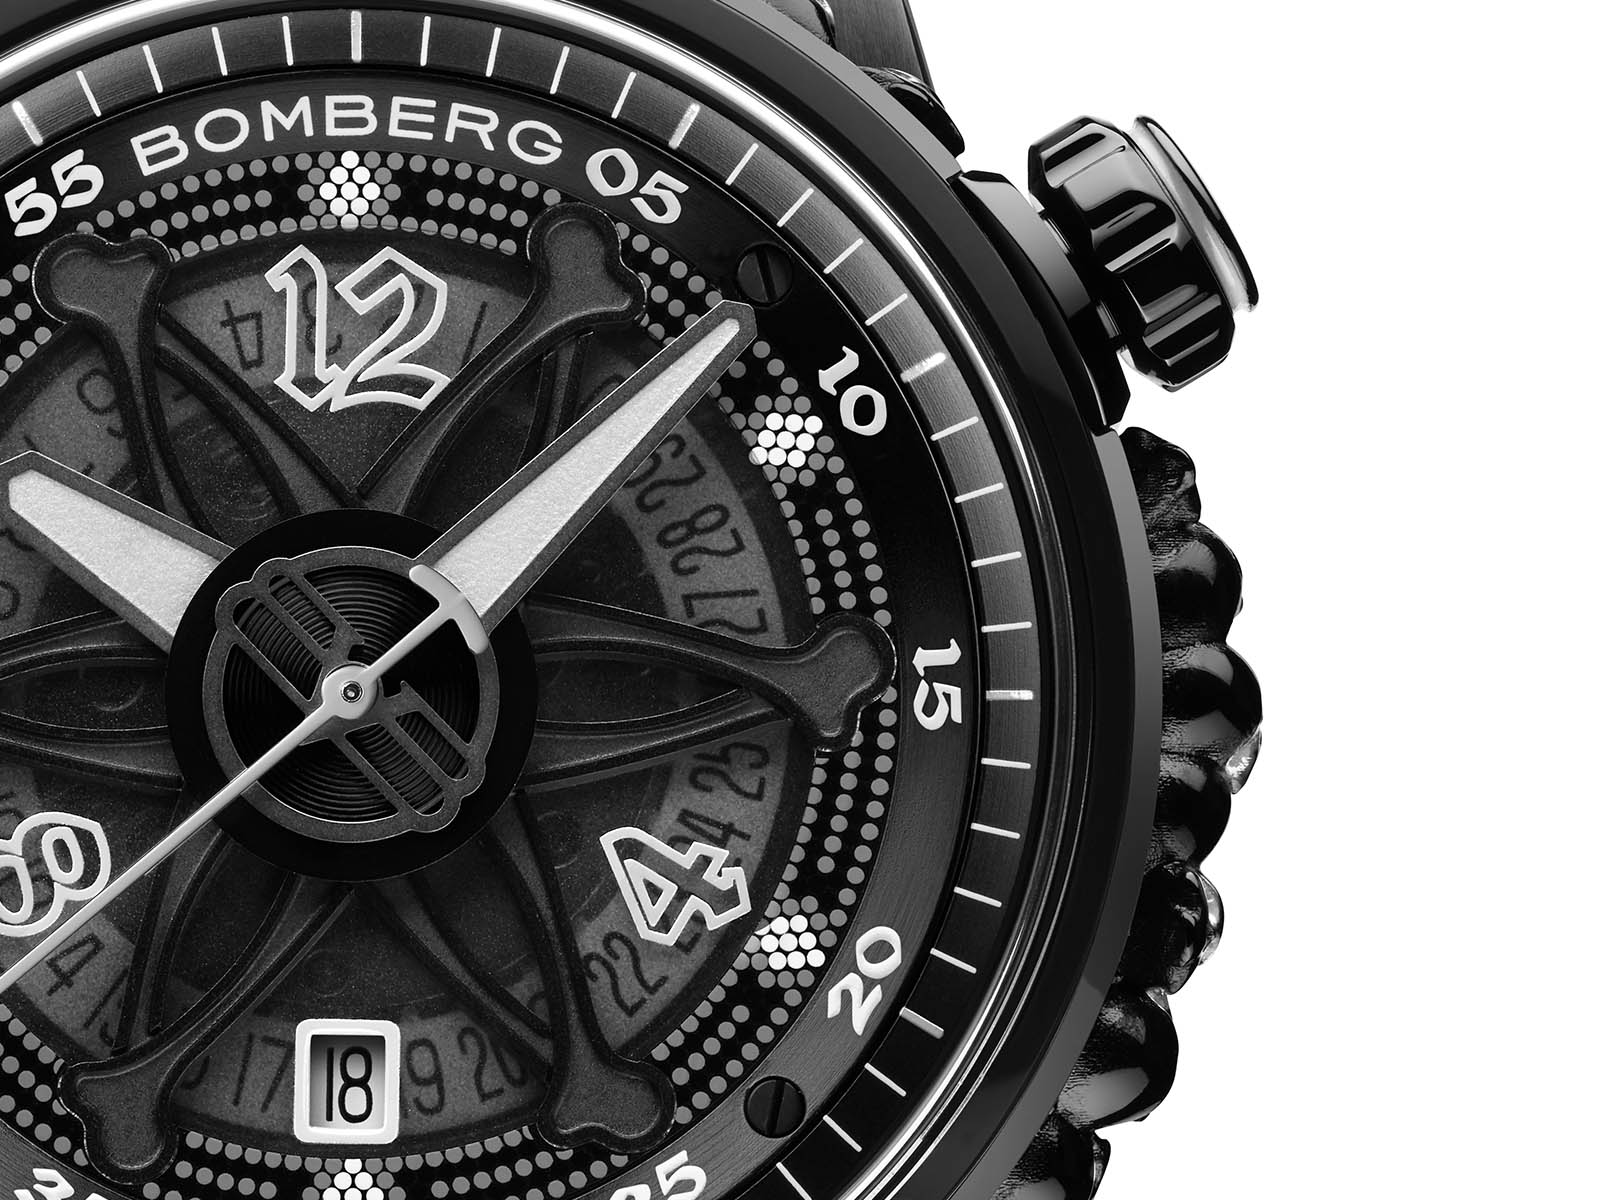 ct43apba-25-1-11-bomberg-gothic-bb-01-automatic-black-catacomb-limited-edition-4.jpg